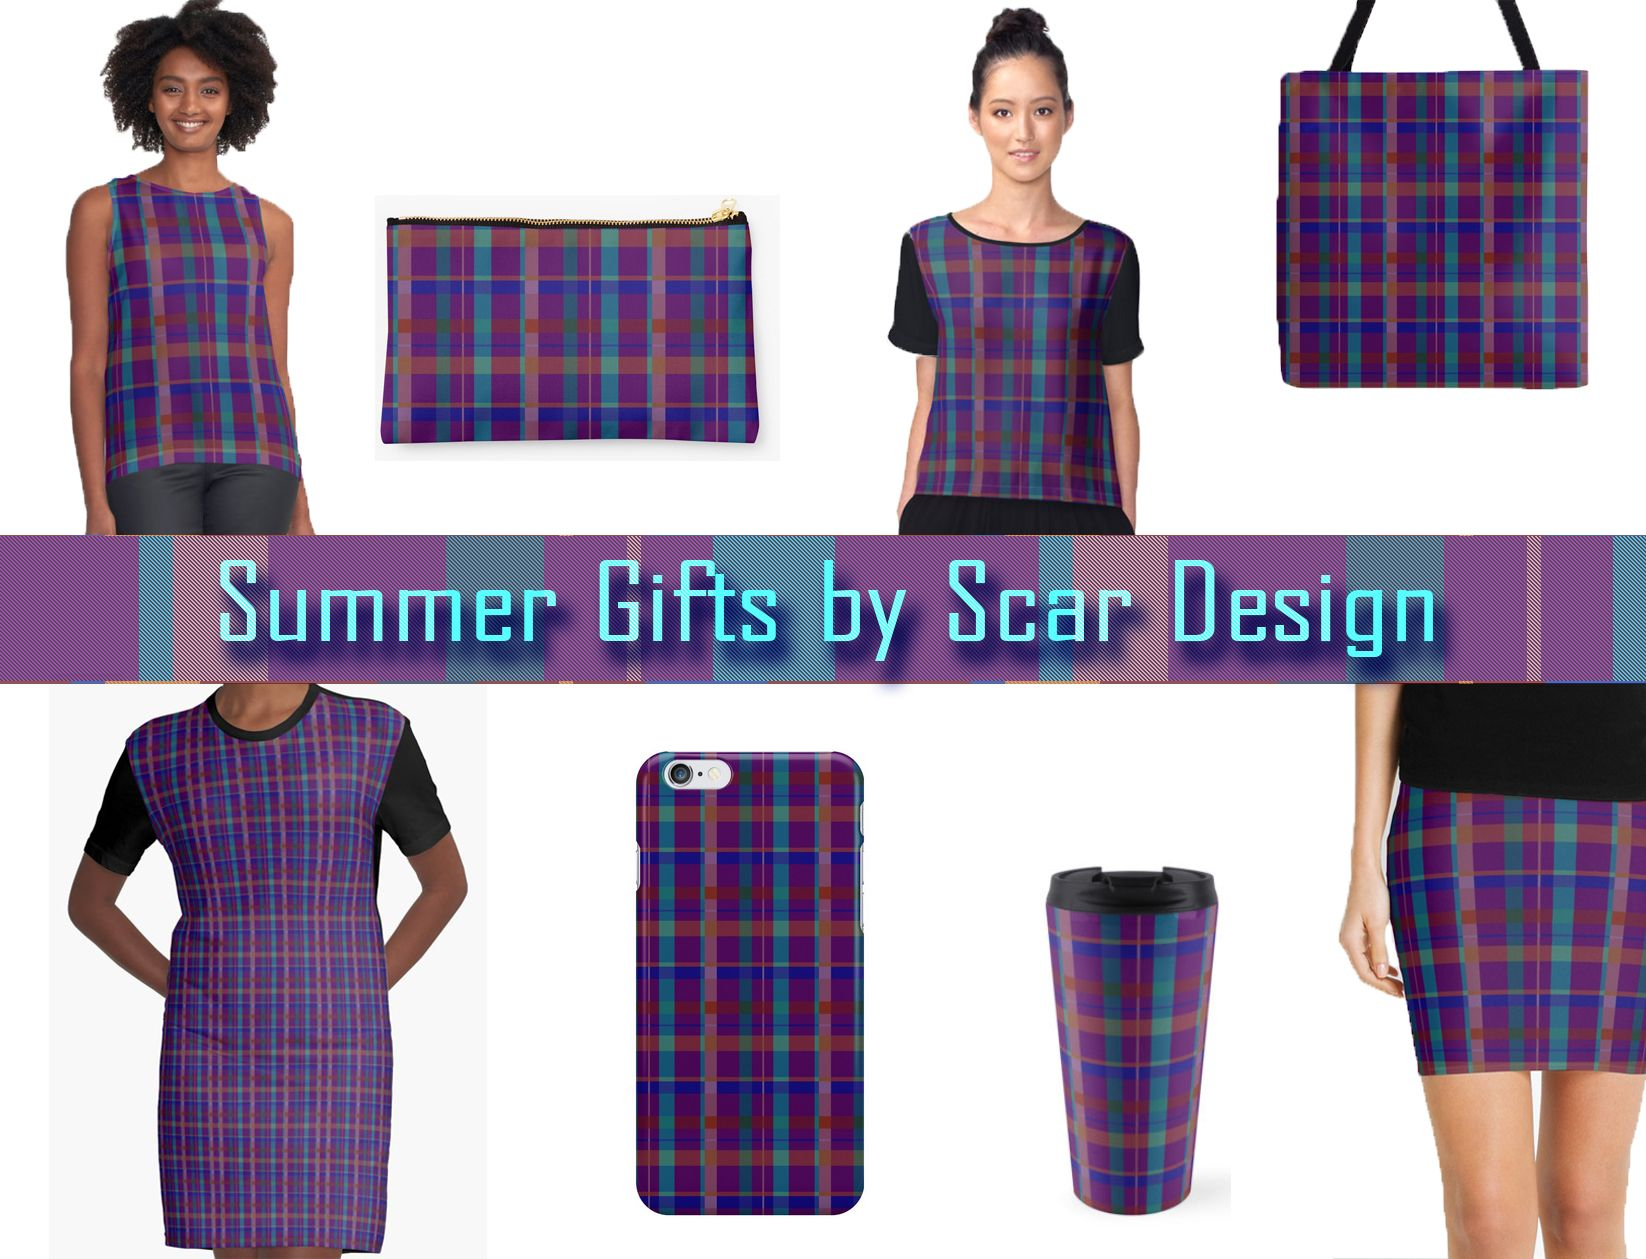 Summer Women's Gift set By Scar Design #summergifts #fashion #summer #beach #beachbag #plaidbag #coolgifts #giftsforher #summerfashion #totebag #summer2016 #womenfashion #womengifts #buygifts #hipster #colorful #style #swag #redbubble #scardesign #plaidgifts #plaid #dress #summerdress #iPhonecase #pouch #skirt #chiffontop #travelmug #tanktop